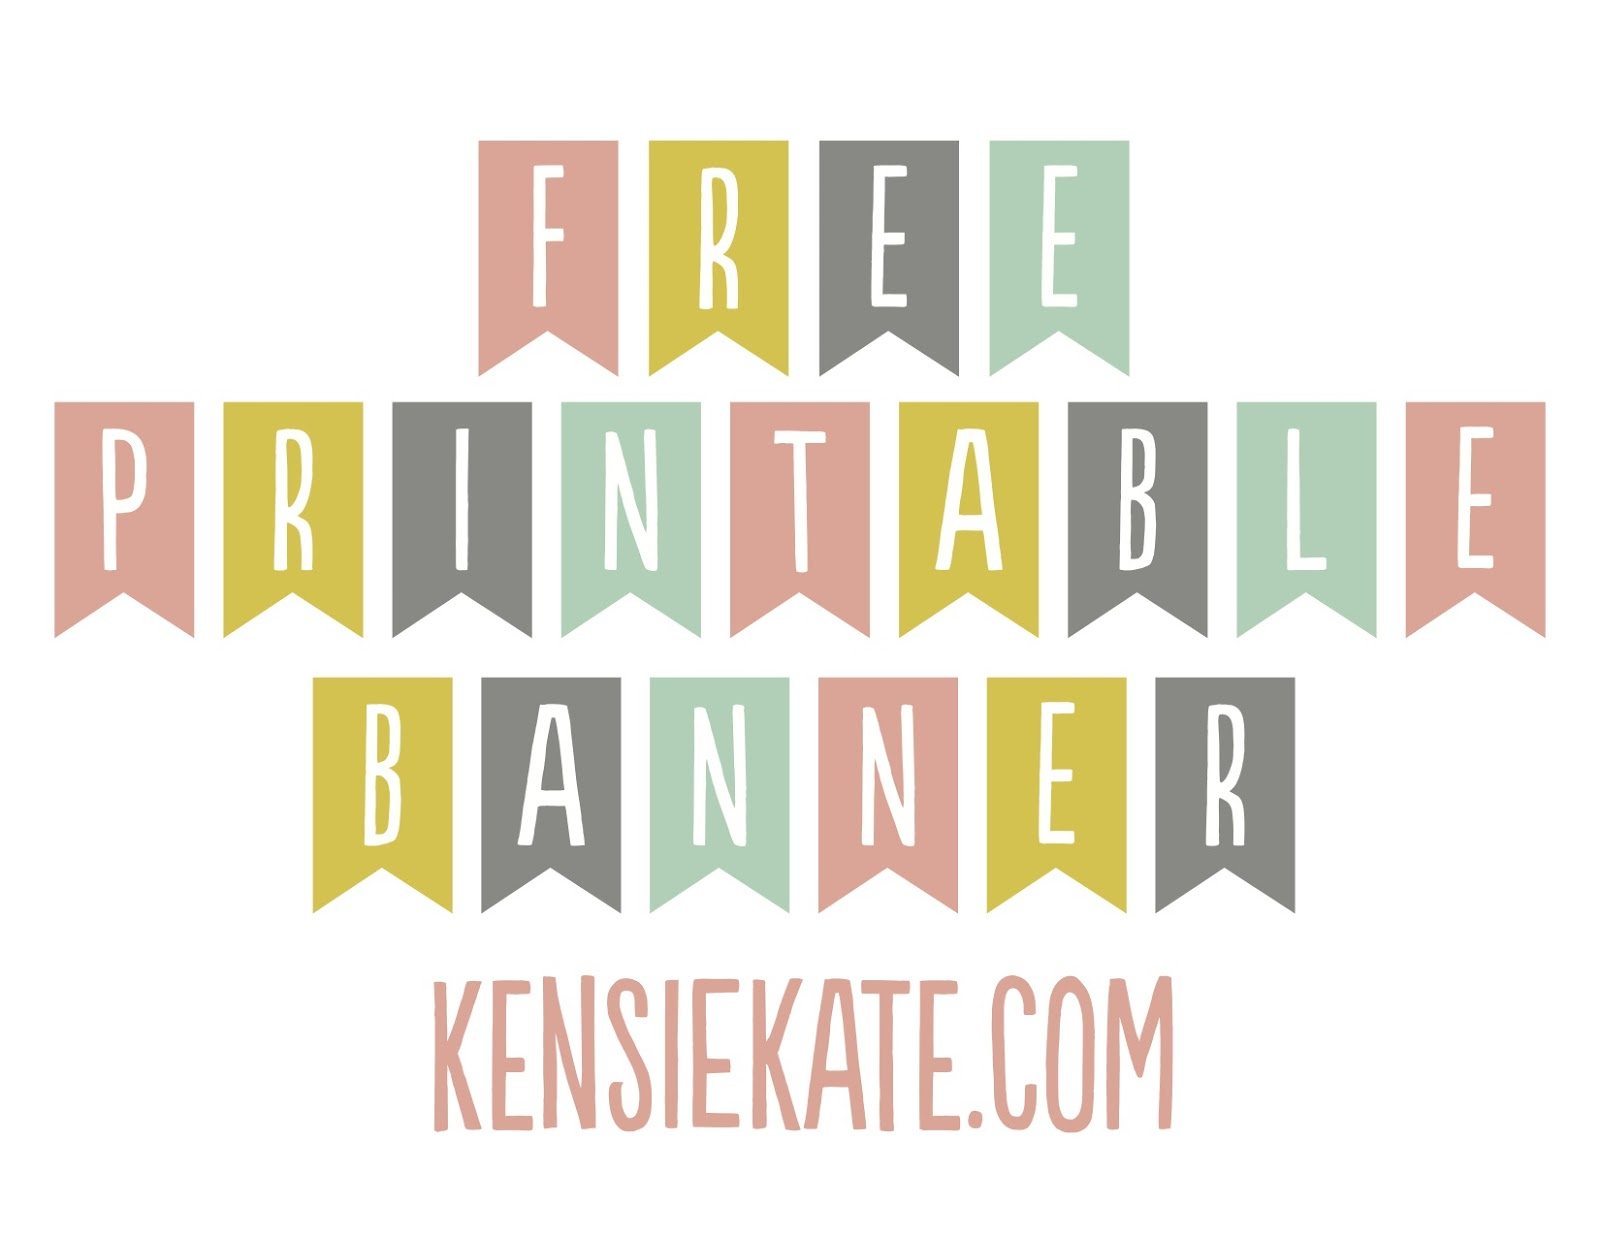 Printable Banner Templates | Download Them And Try To Solve - Free Printable Banner Templates